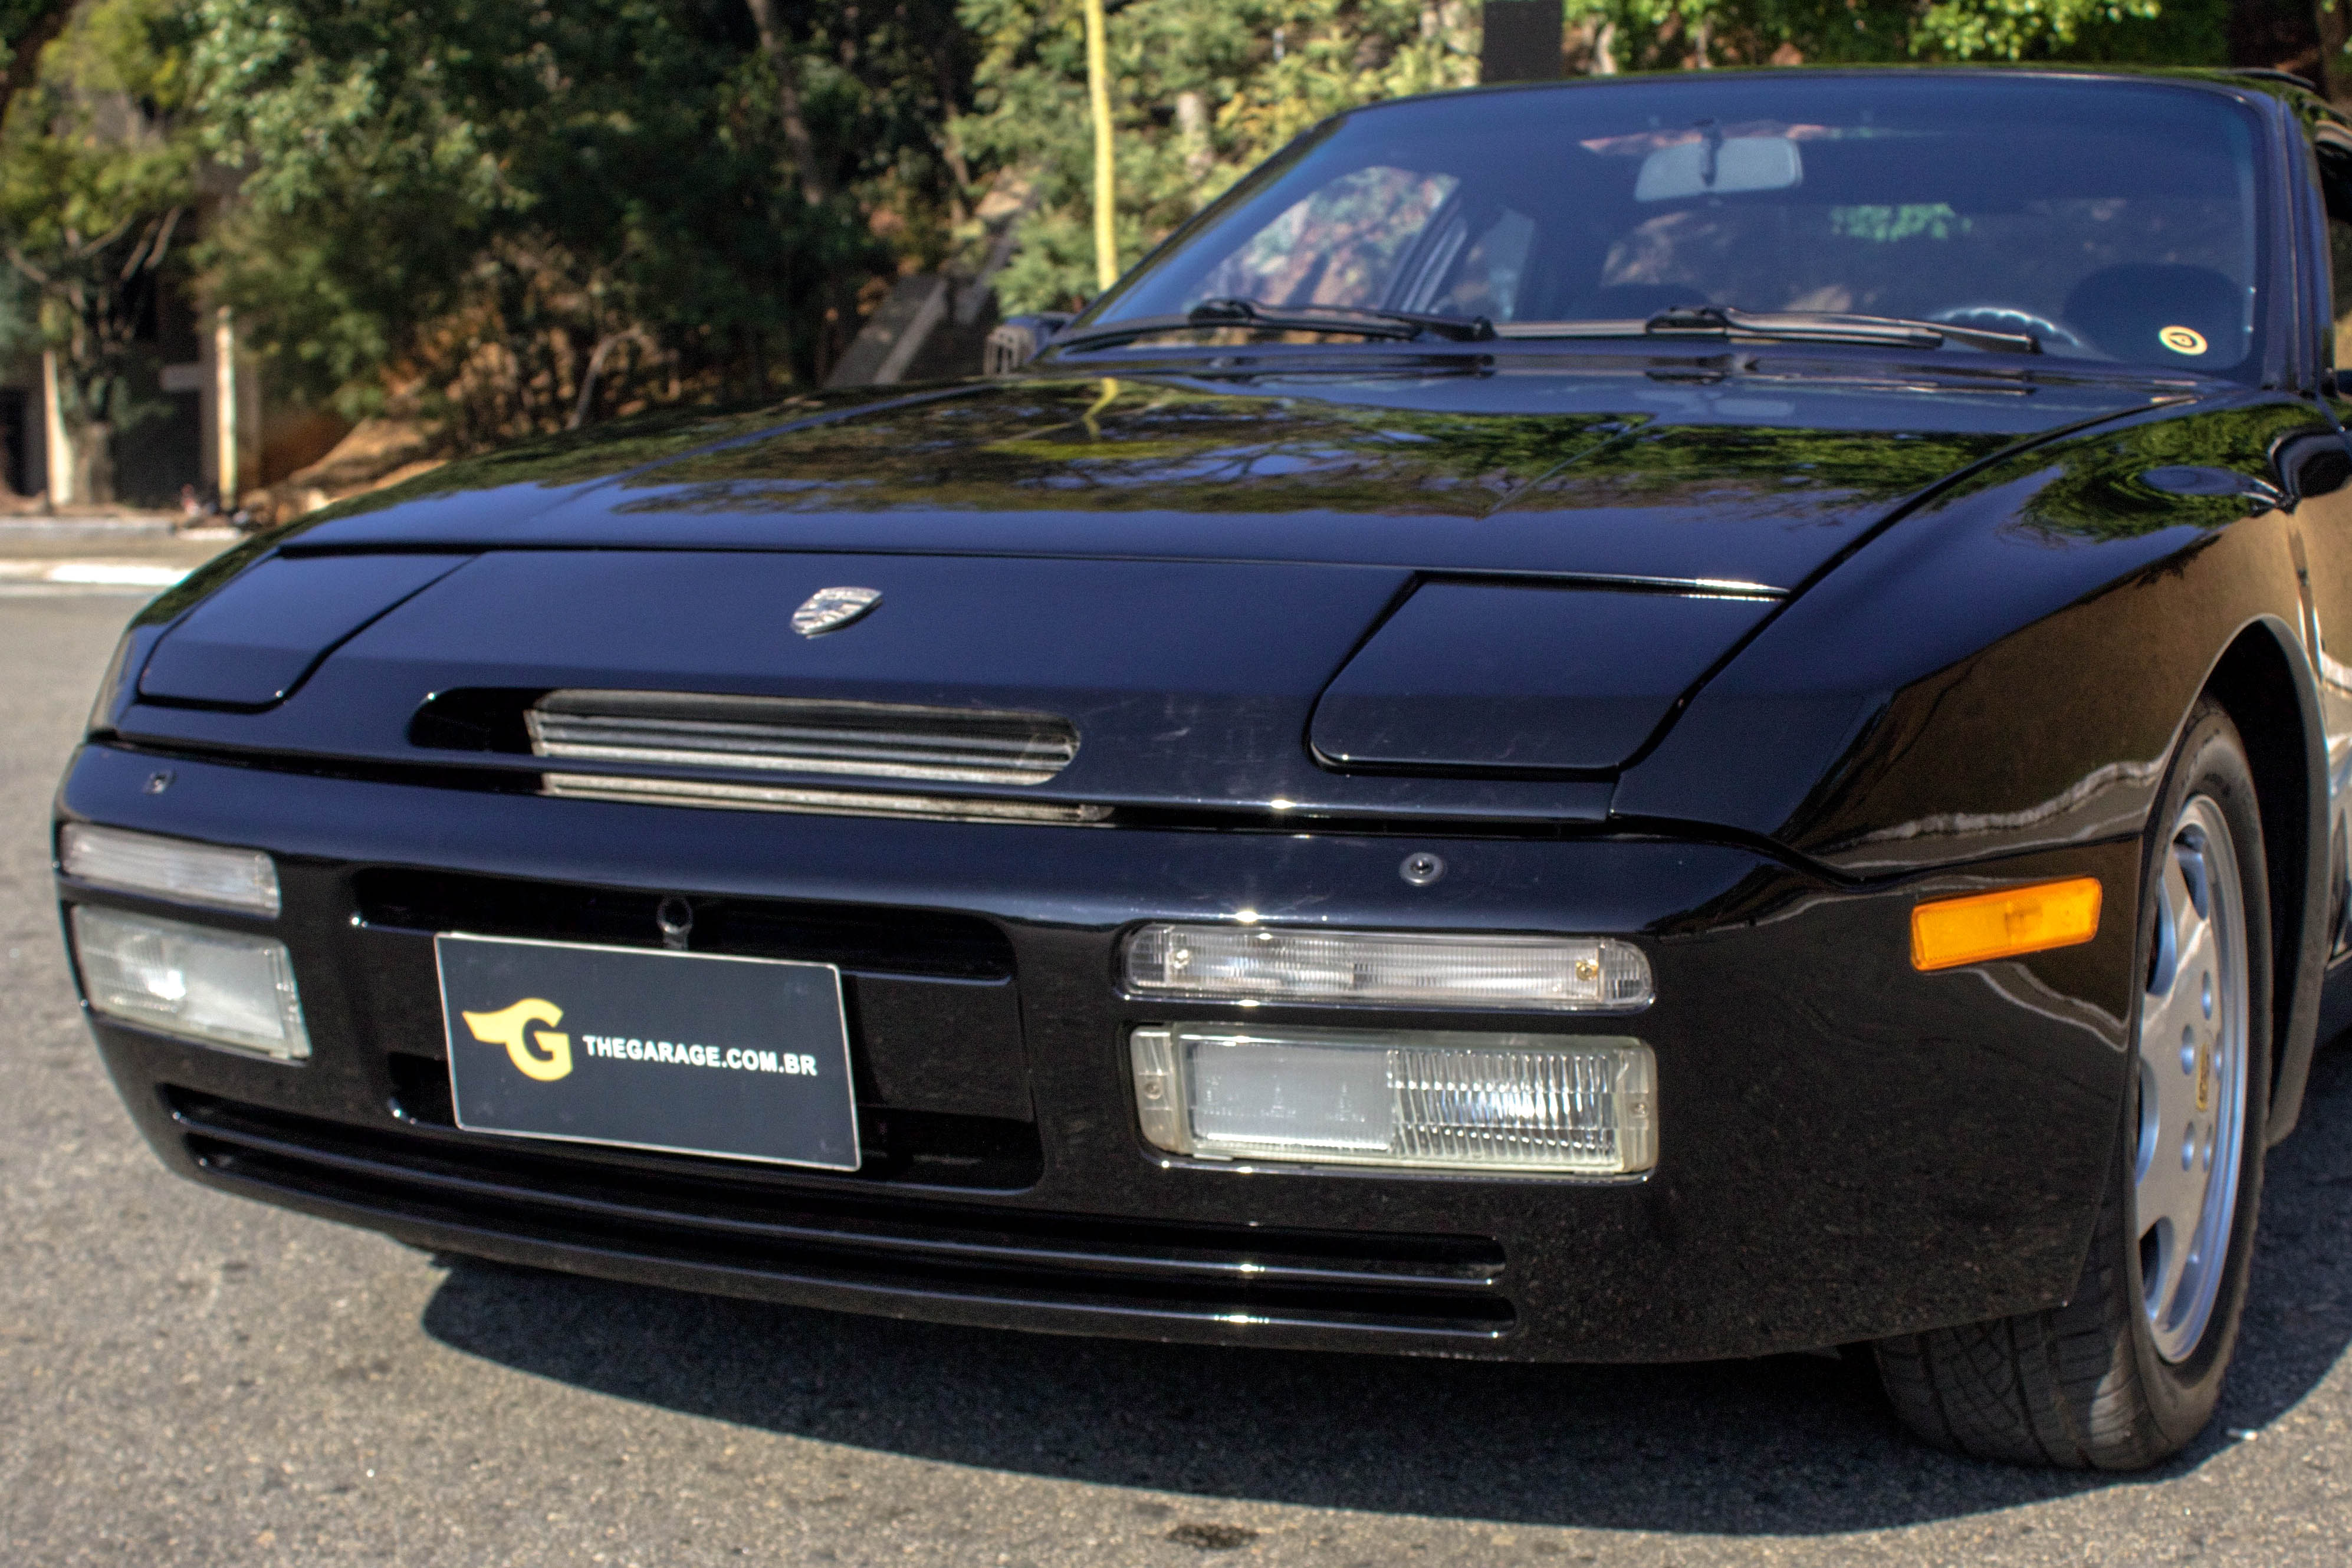 1986 Porsche 944 Turbo The Garage